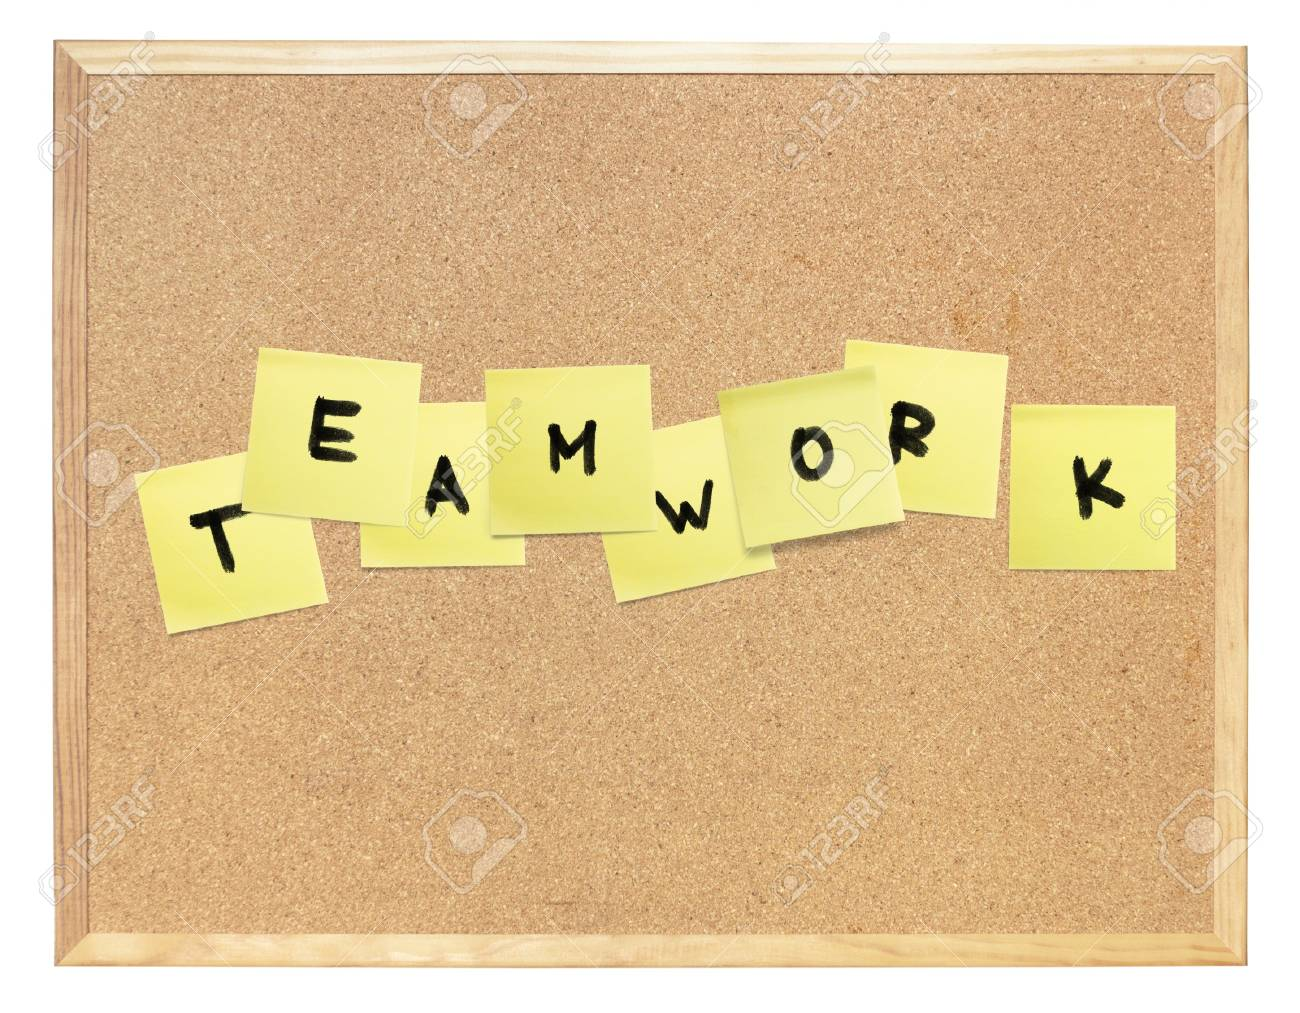 Word of Teamwork, composed on cork board. Stock Photo - 7830325